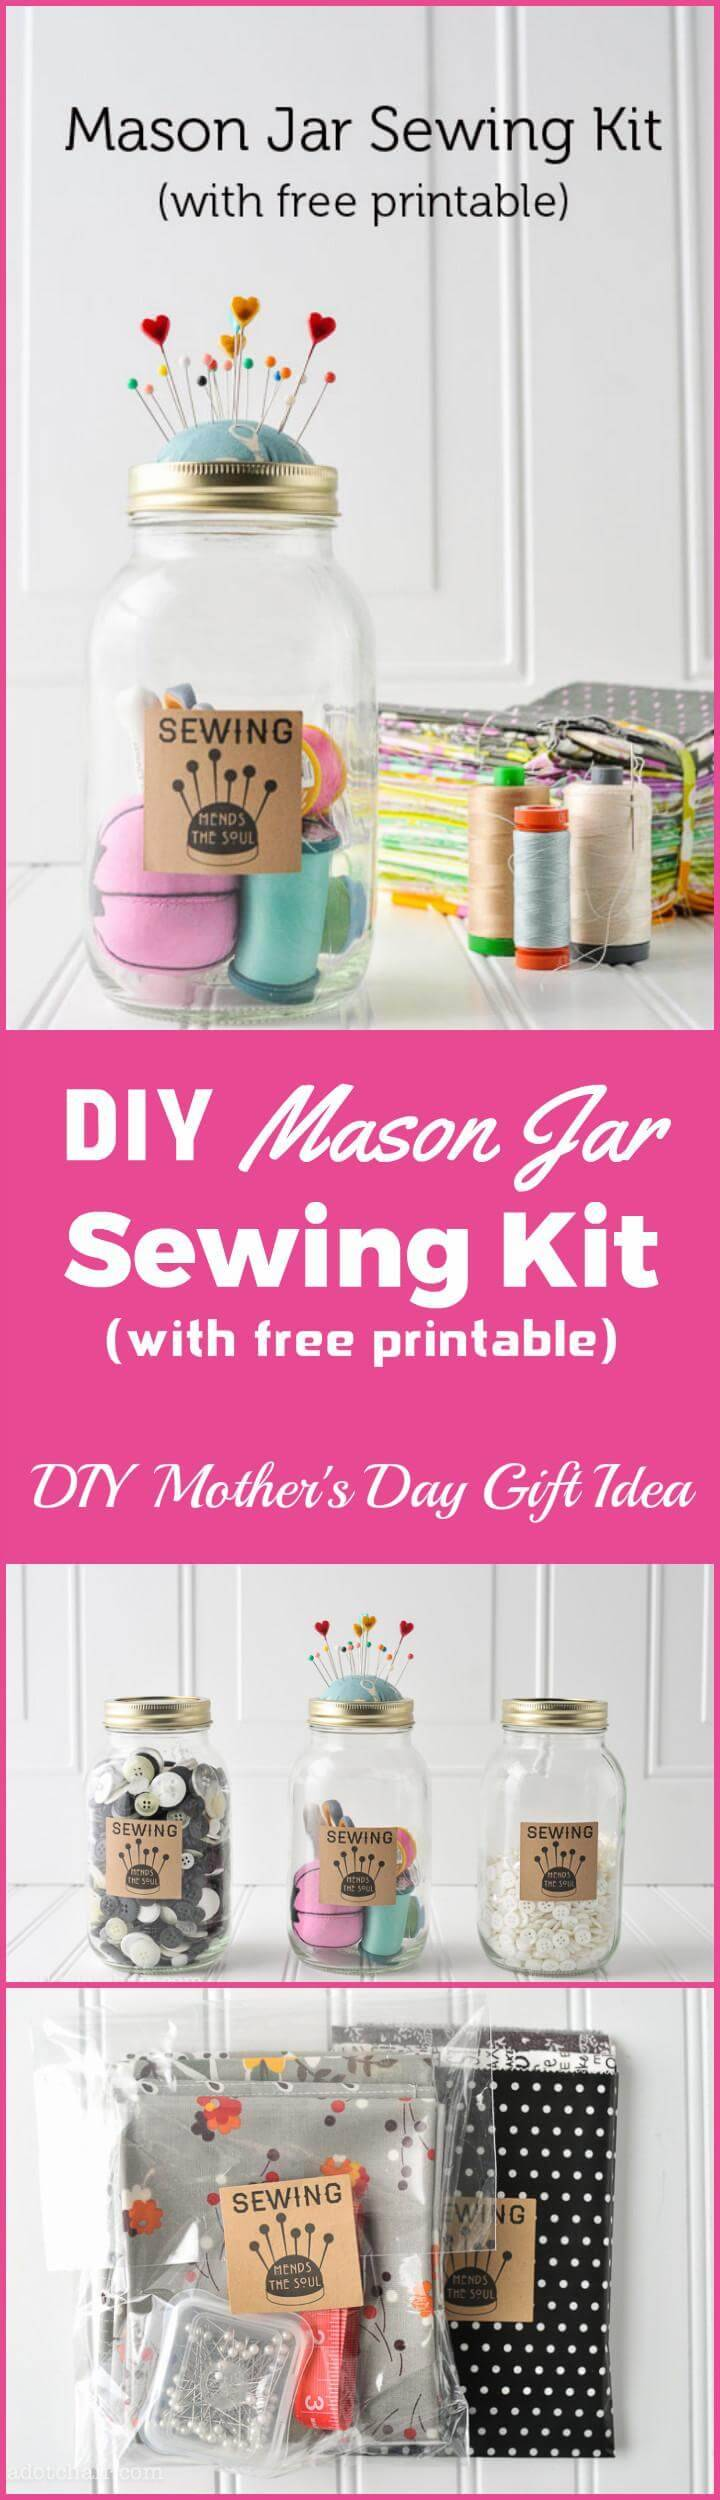 DIY Mason jar sewing kit Mother's Day gift